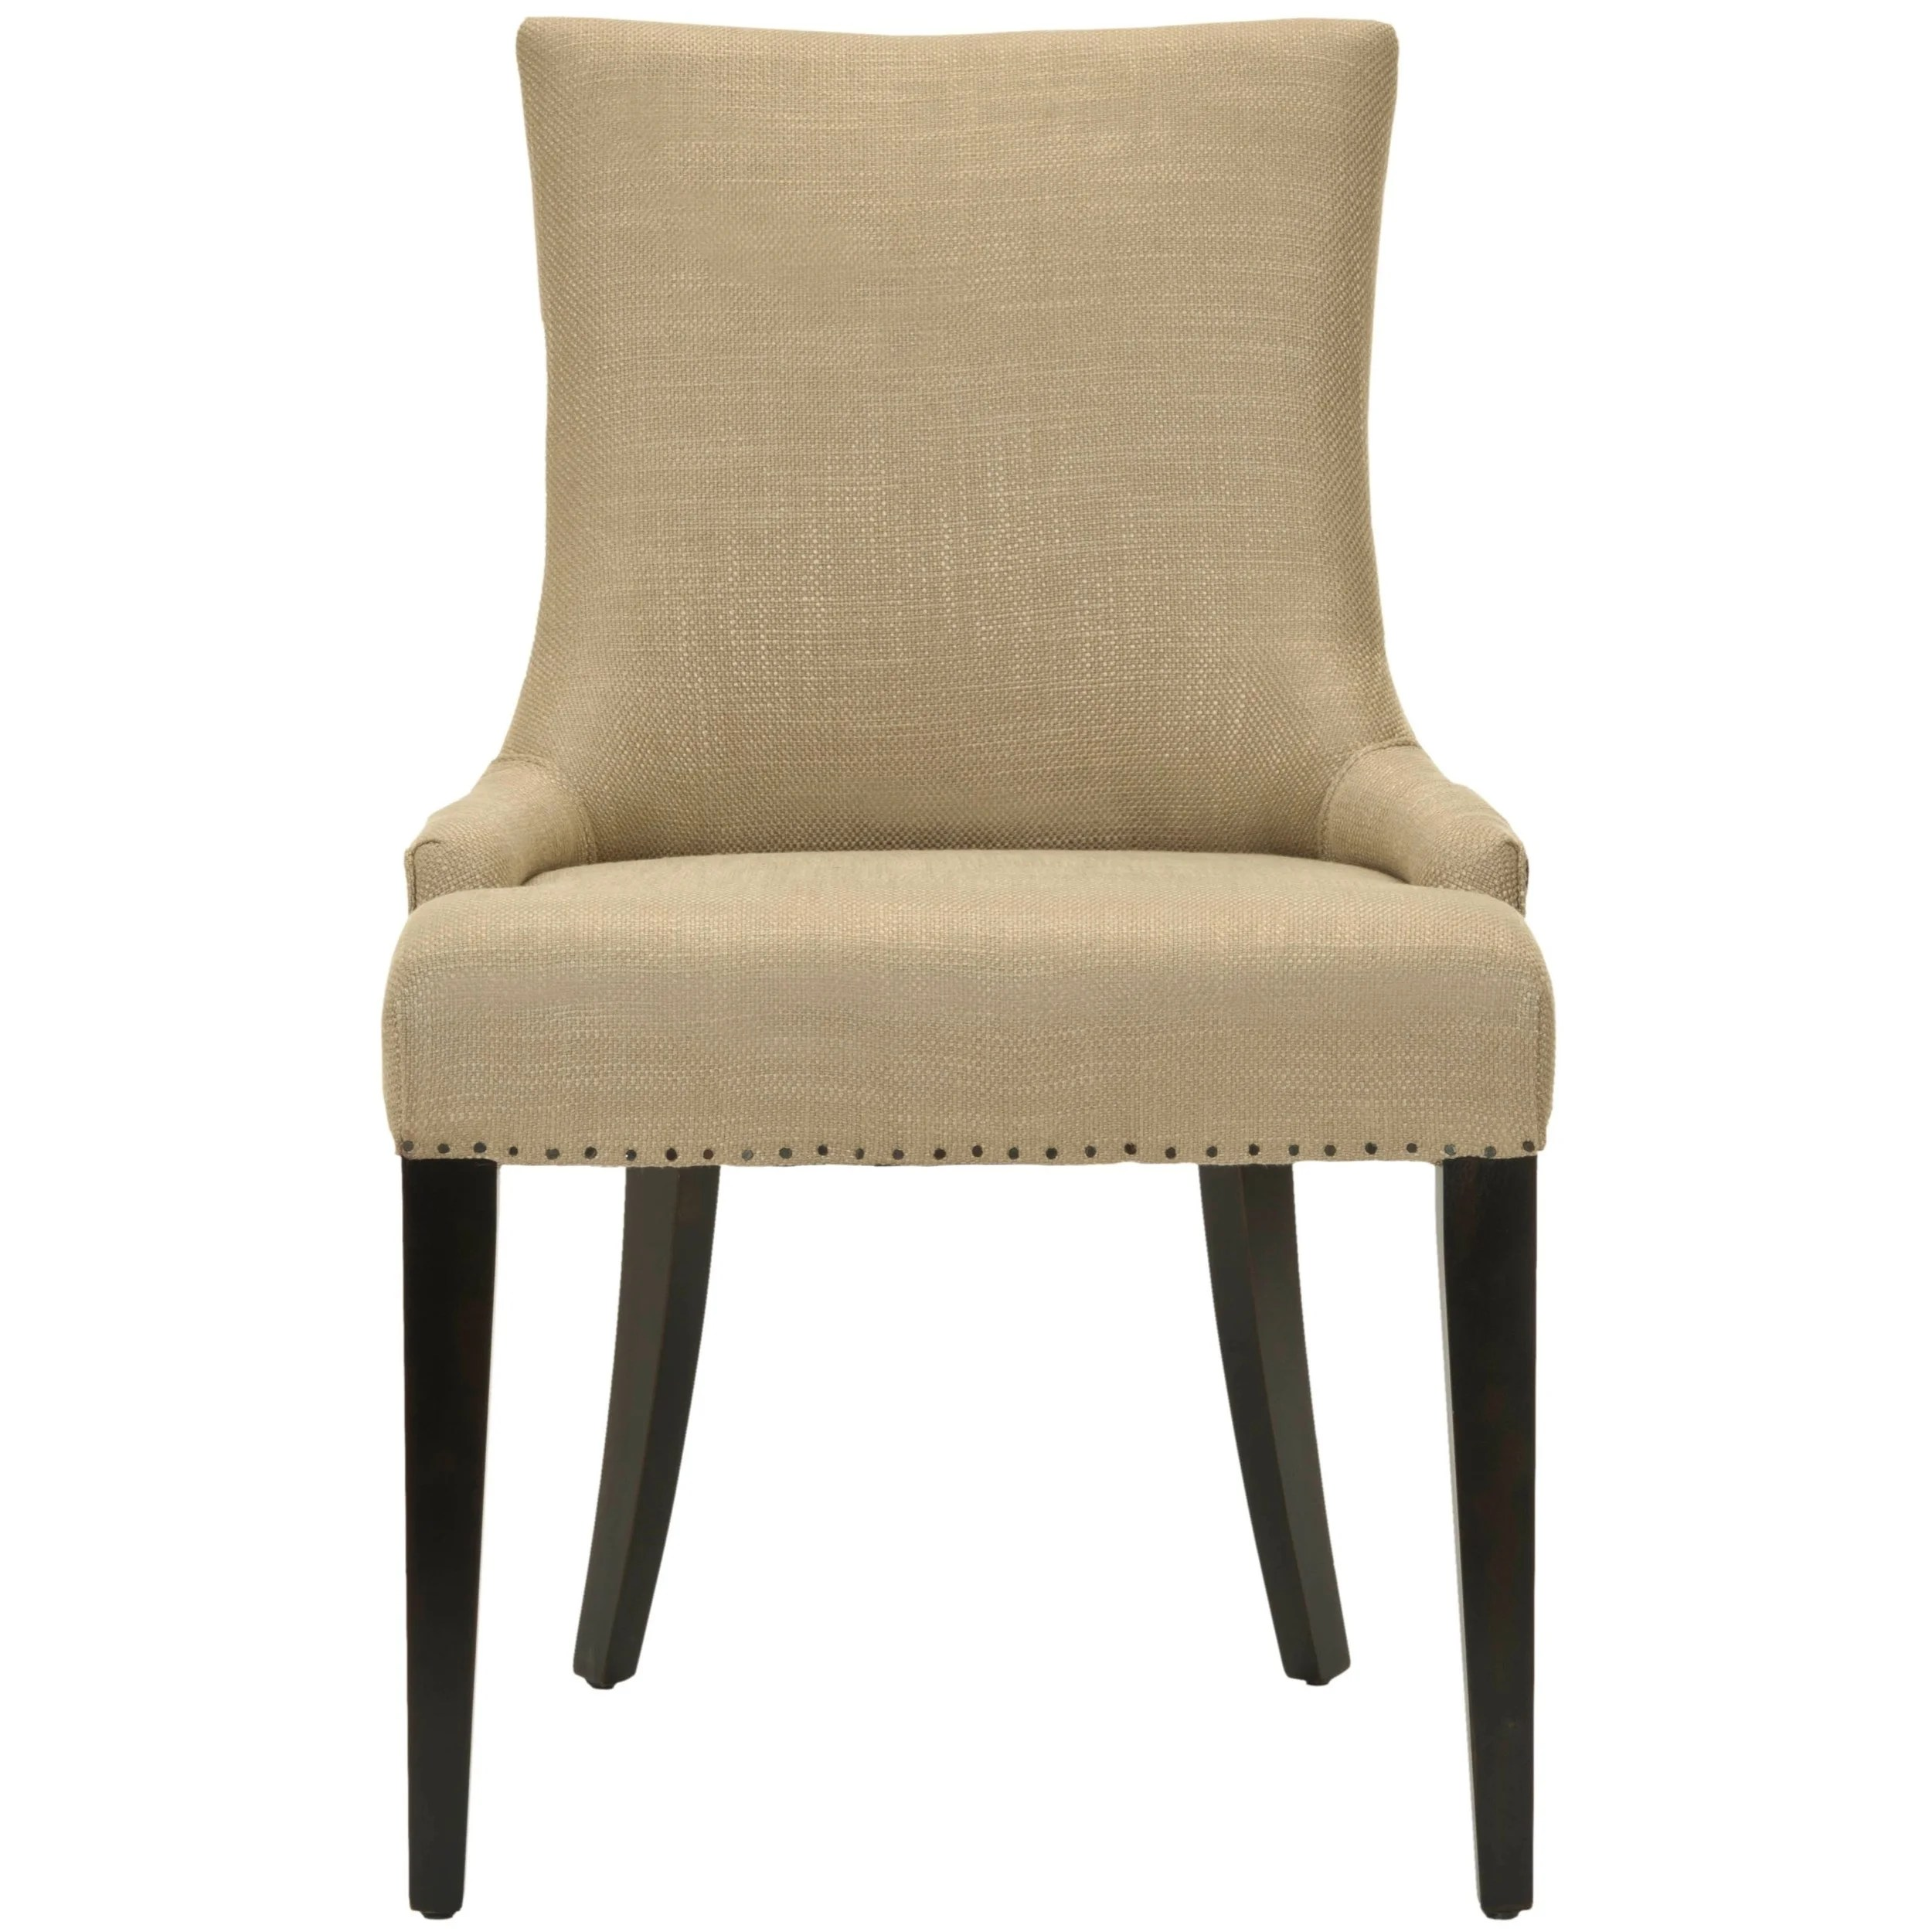 Beige Leather Dining Chairs Safavieh En Vogue Dining Becca Beige Viscose And Leather Back Dining Chair